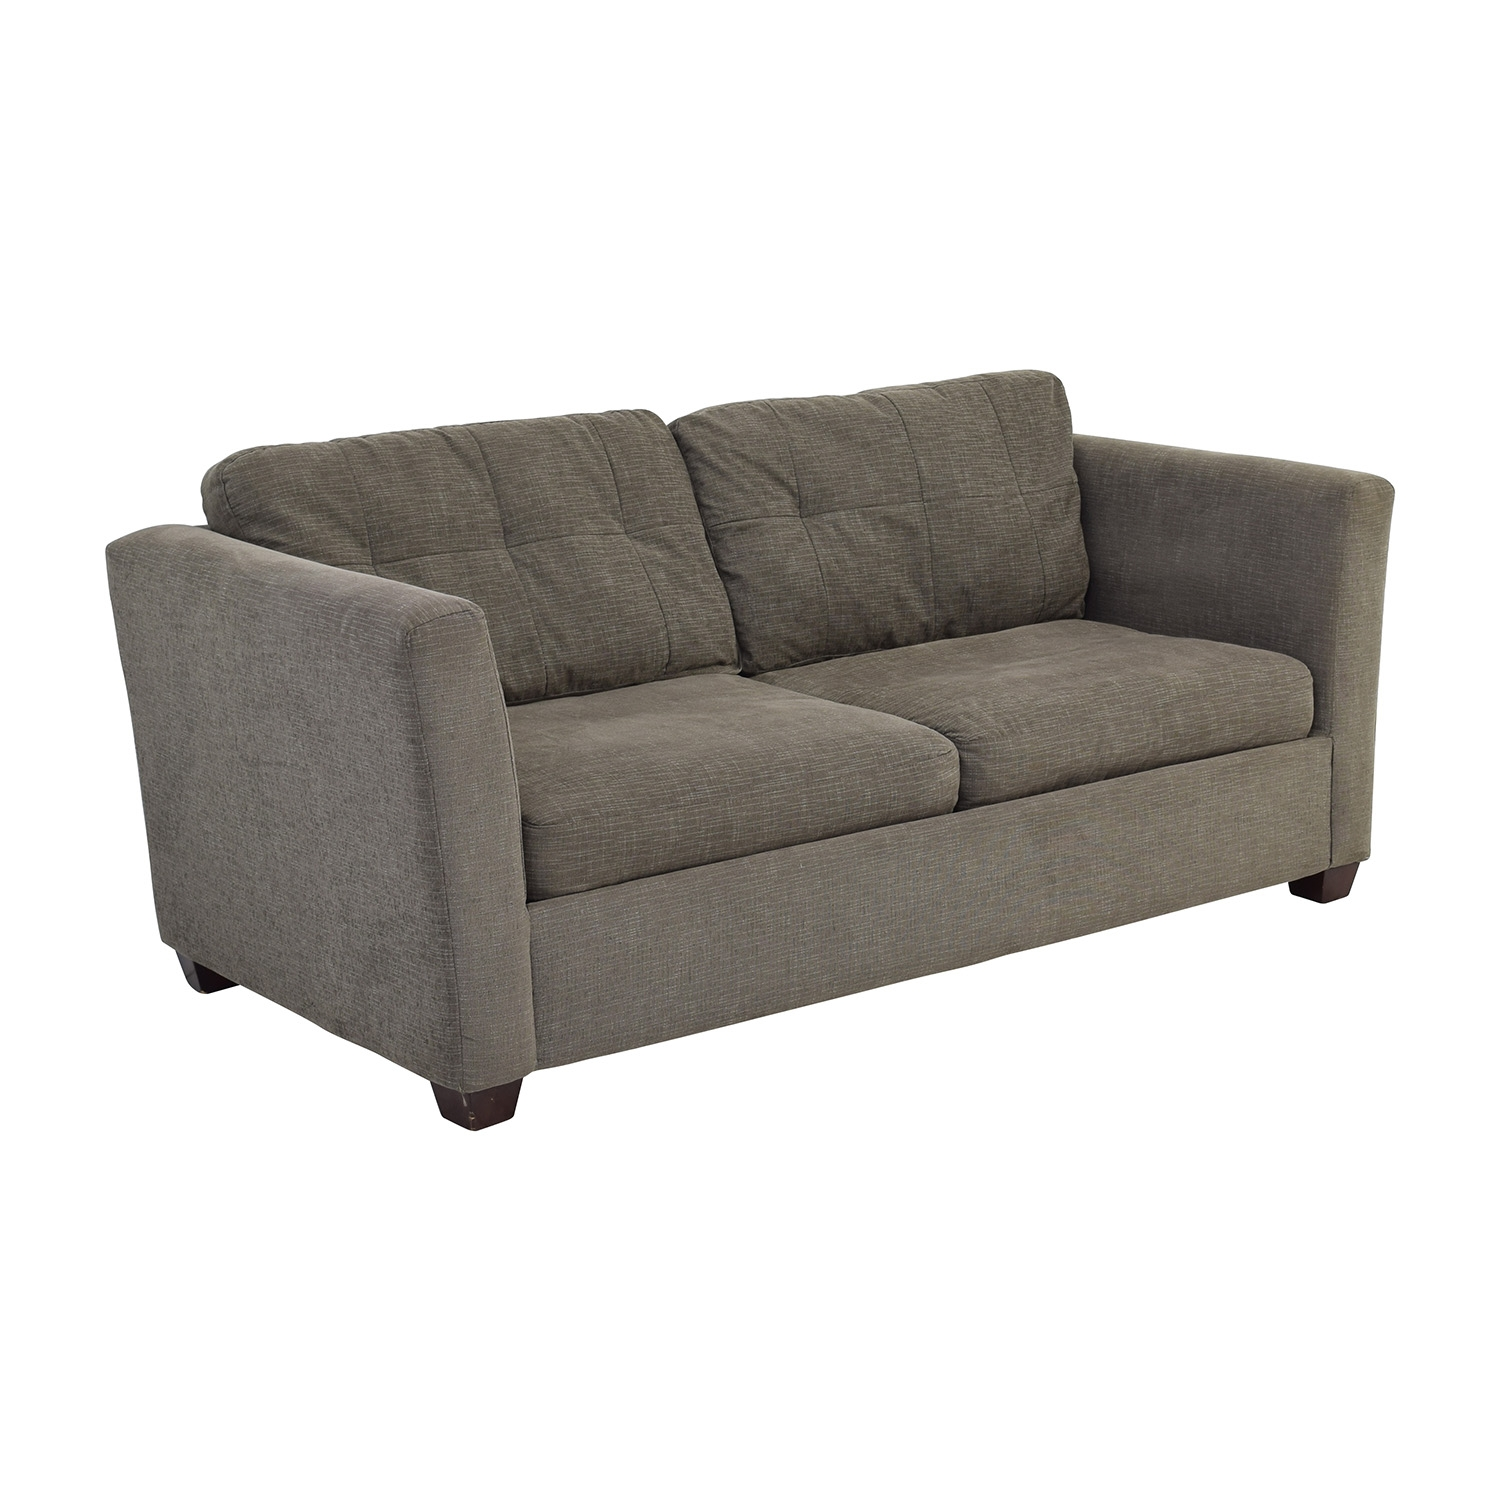 58 Off Bauhaus Bauhaus Grey Queen Sleeper Sofa Sofas For Bauhaus Sleeper Sofa (View 8 of 15)